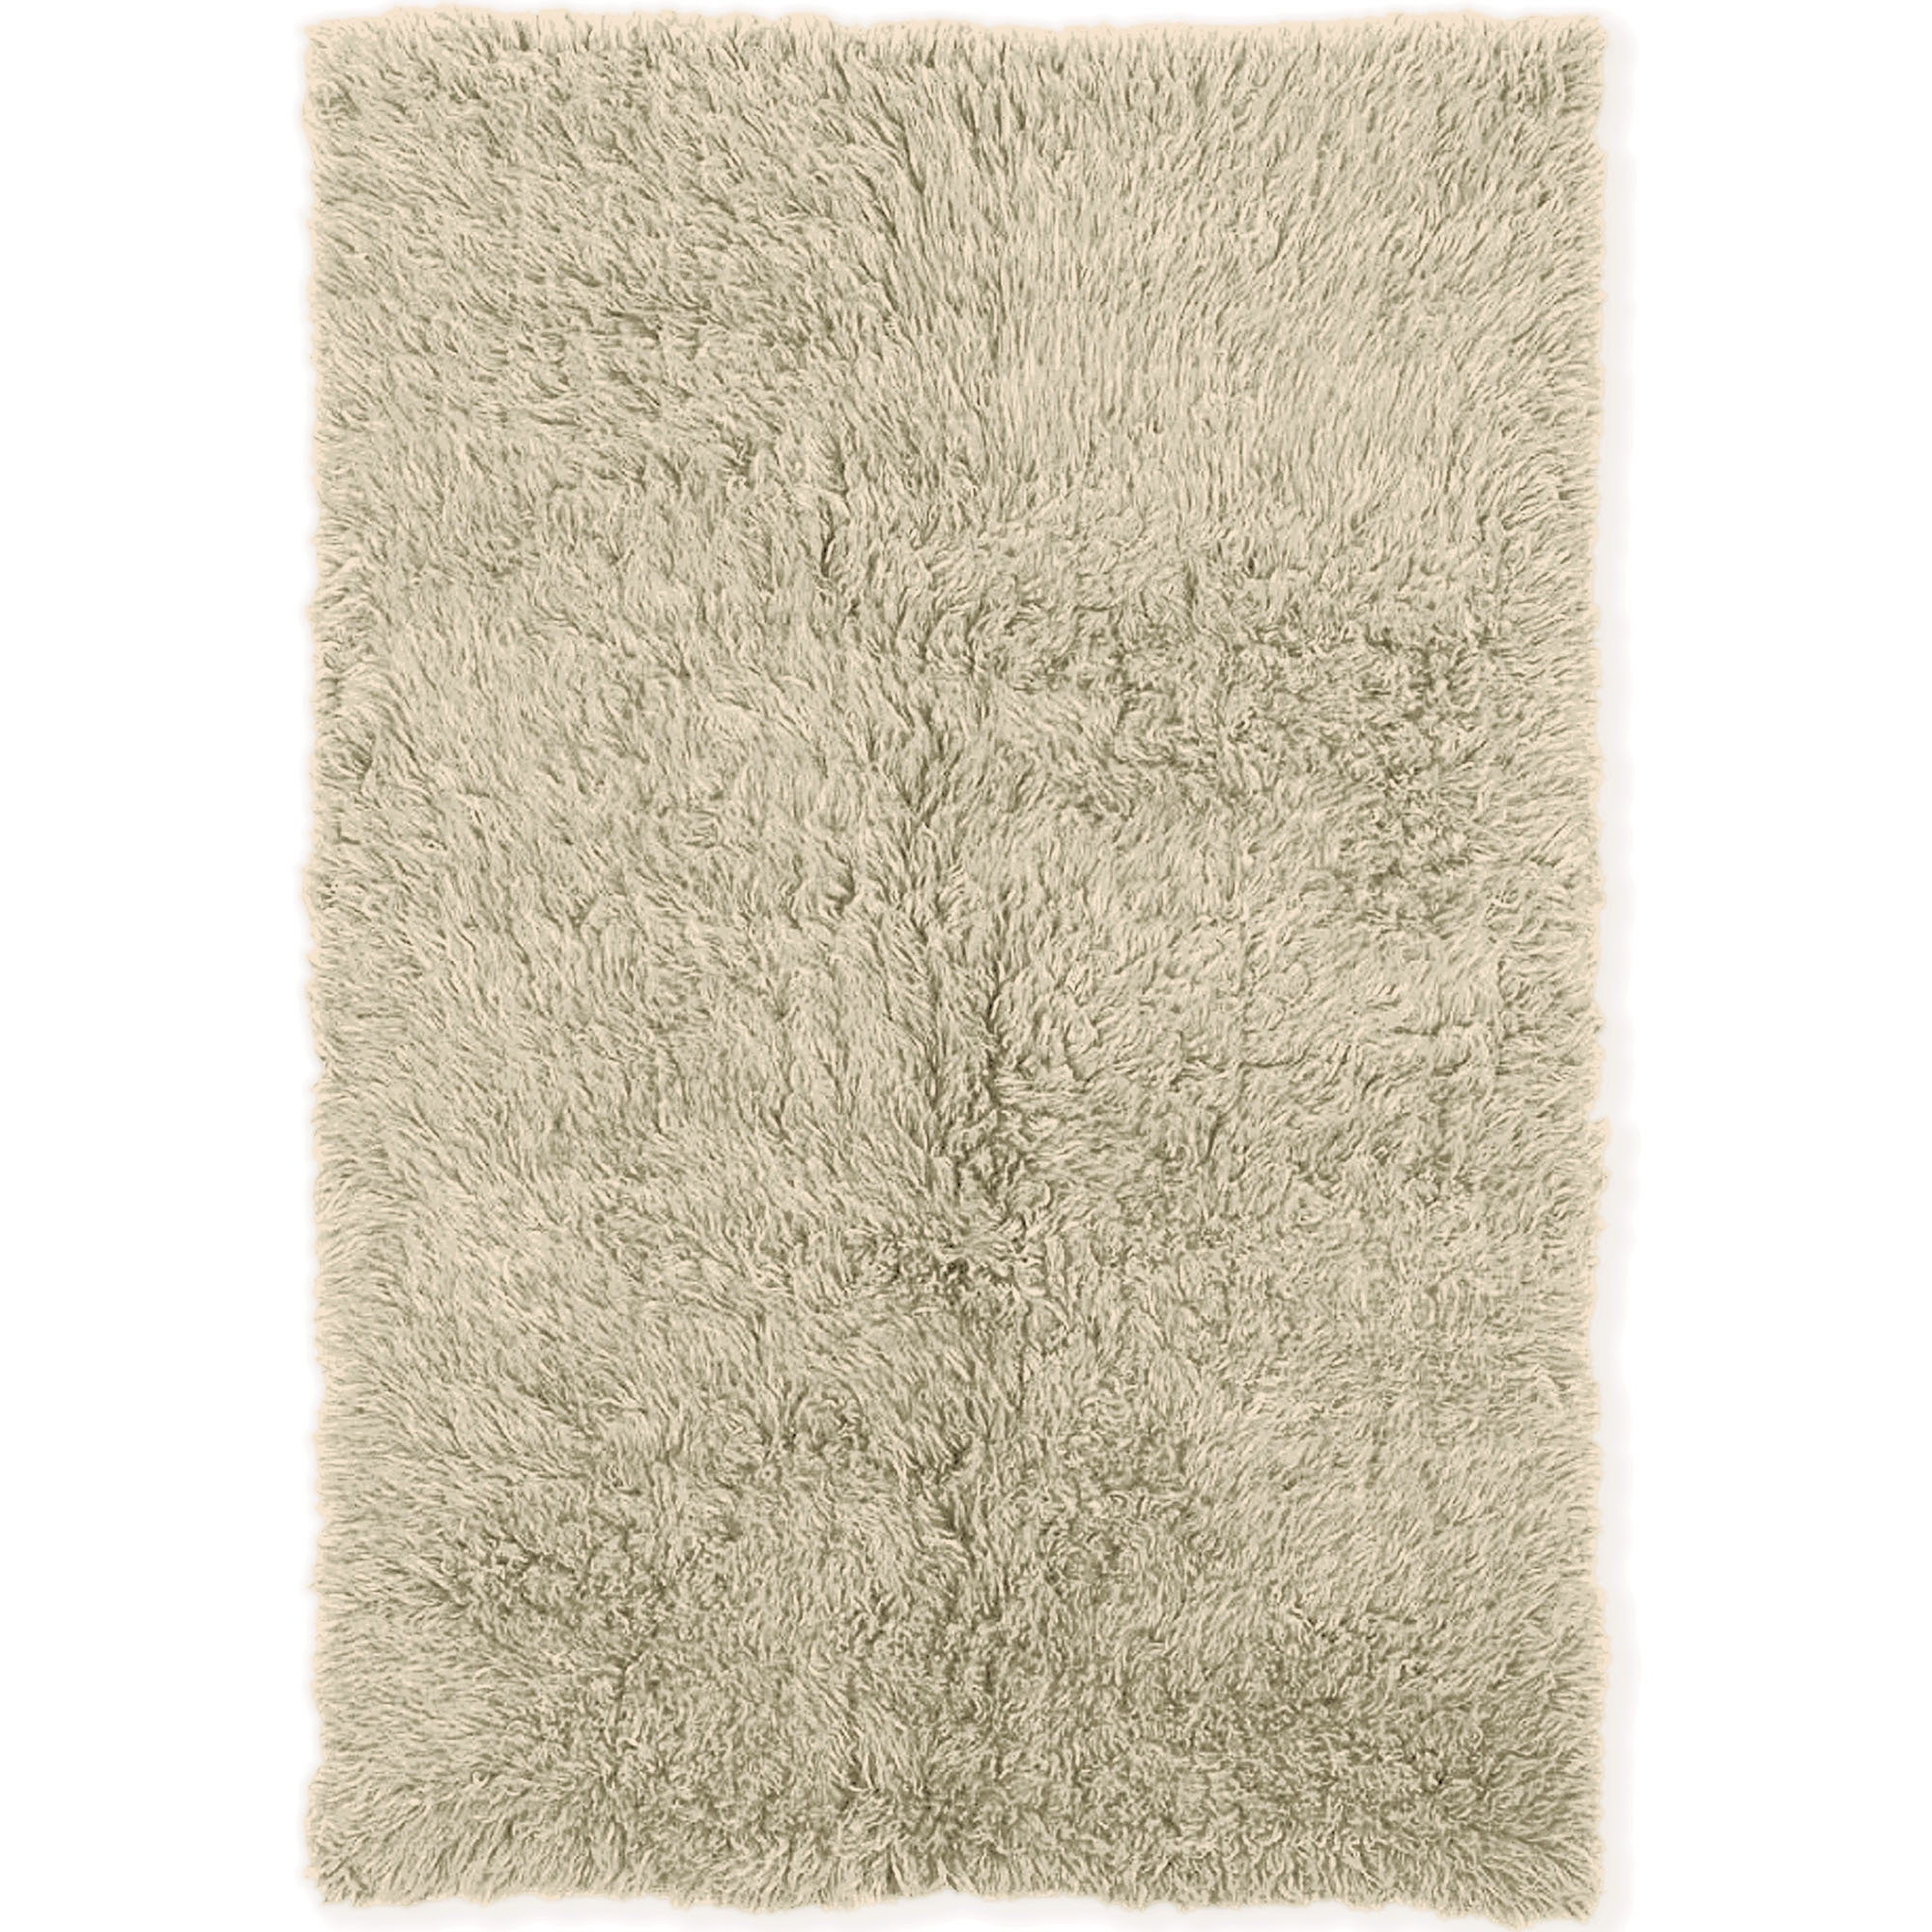 Flokati Shag Rug Roselawnlutheran Throughout Natural Wool Area Rugs (#3 of 15)